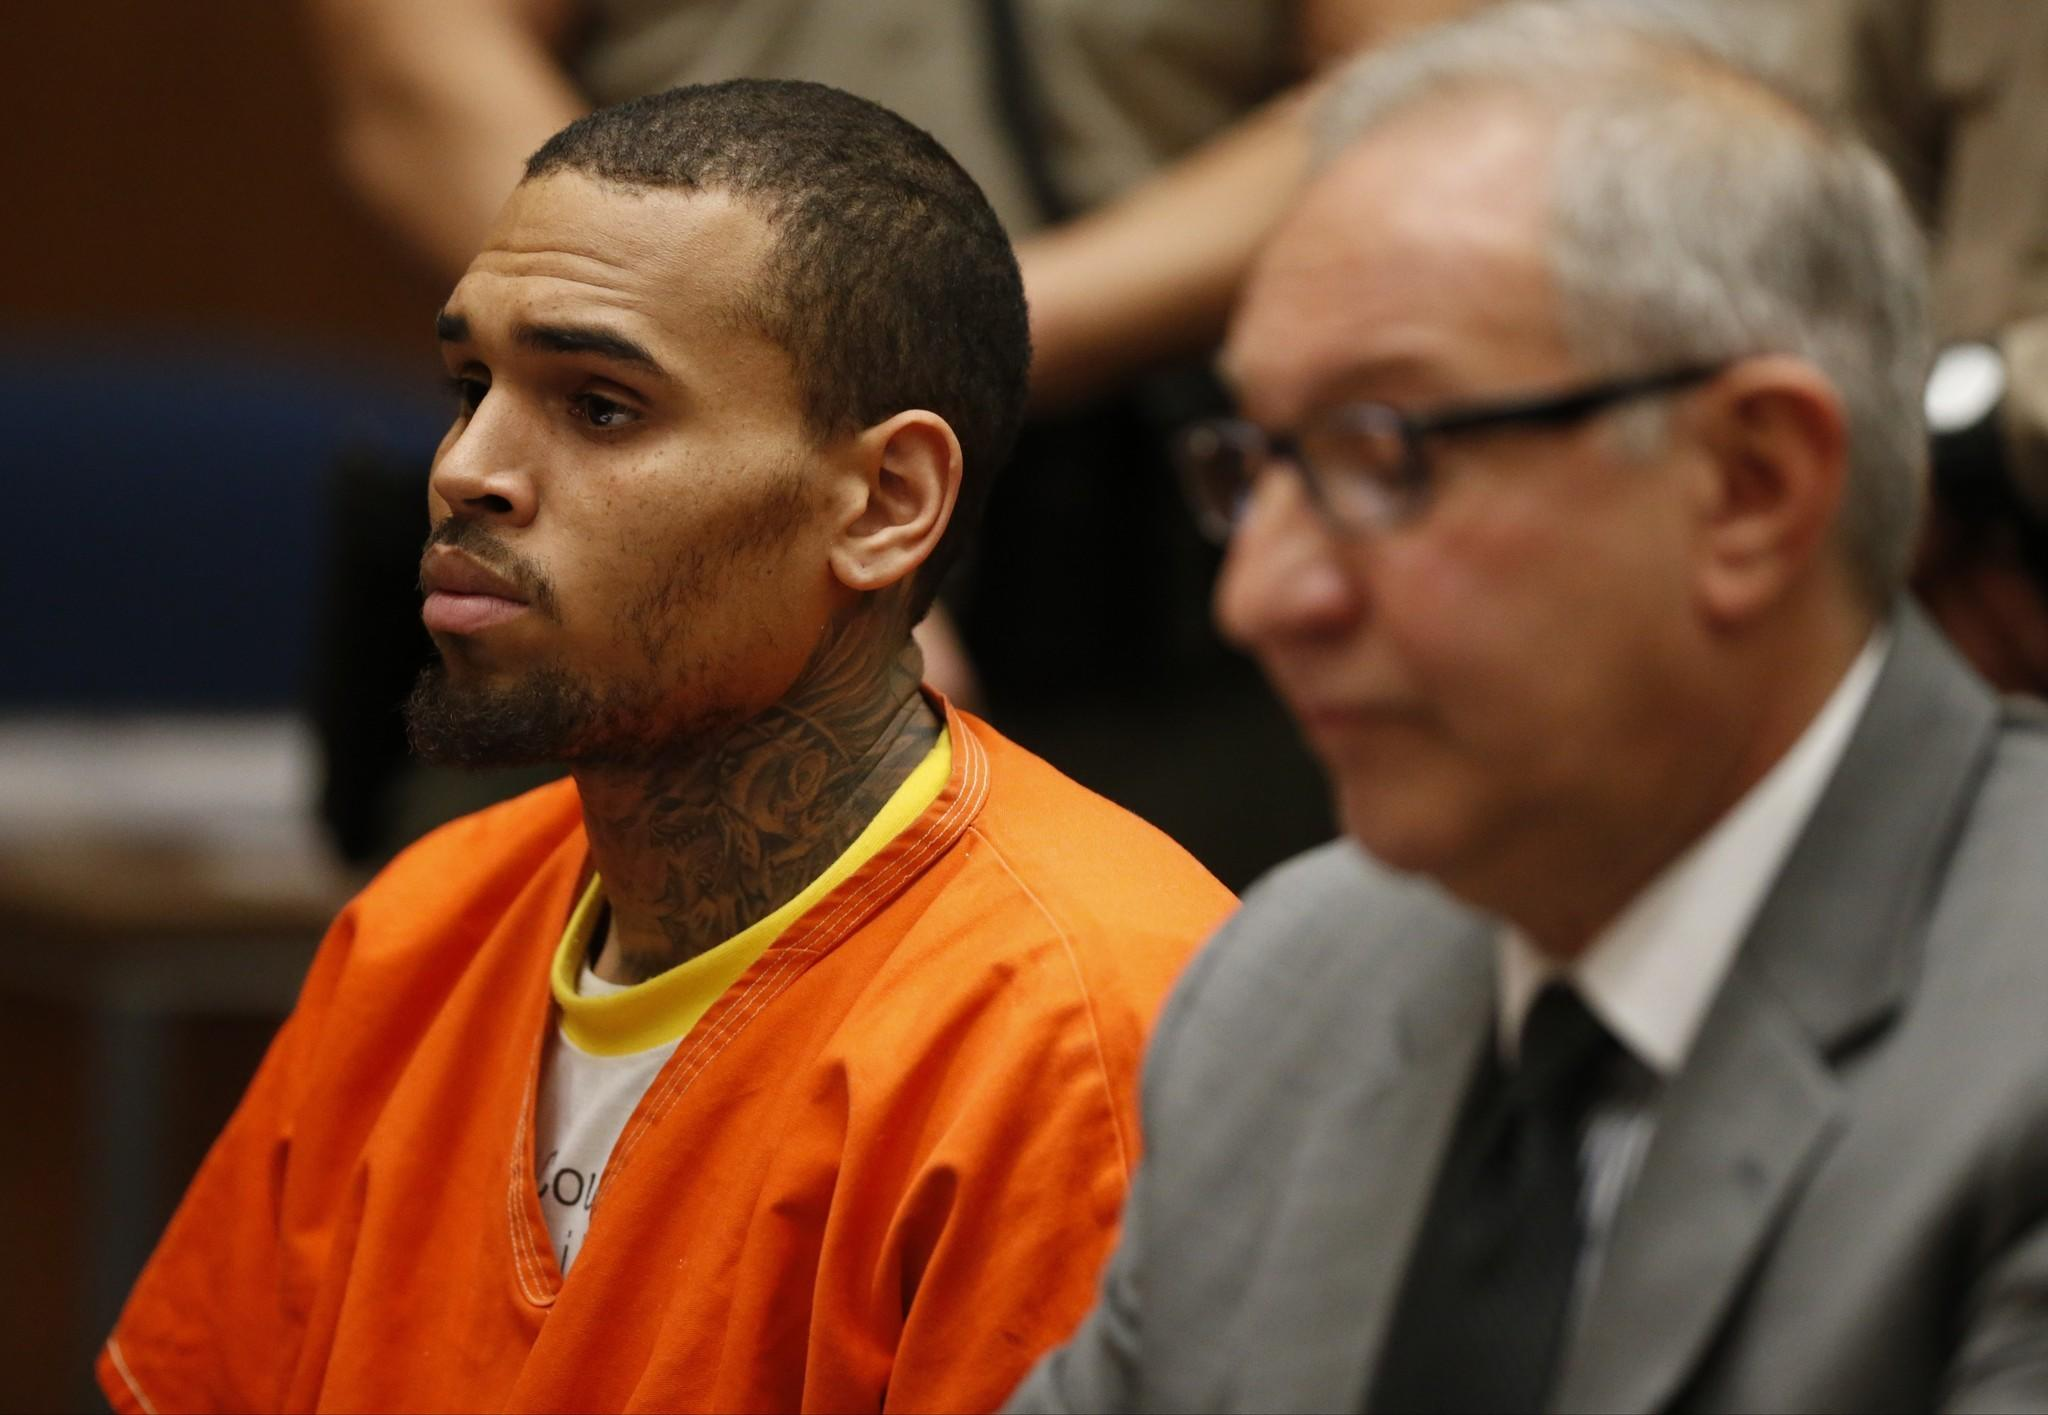 Singer Chris Brown, left, appears with attorney Mark Geragos at a court hearing in Los Angeles.